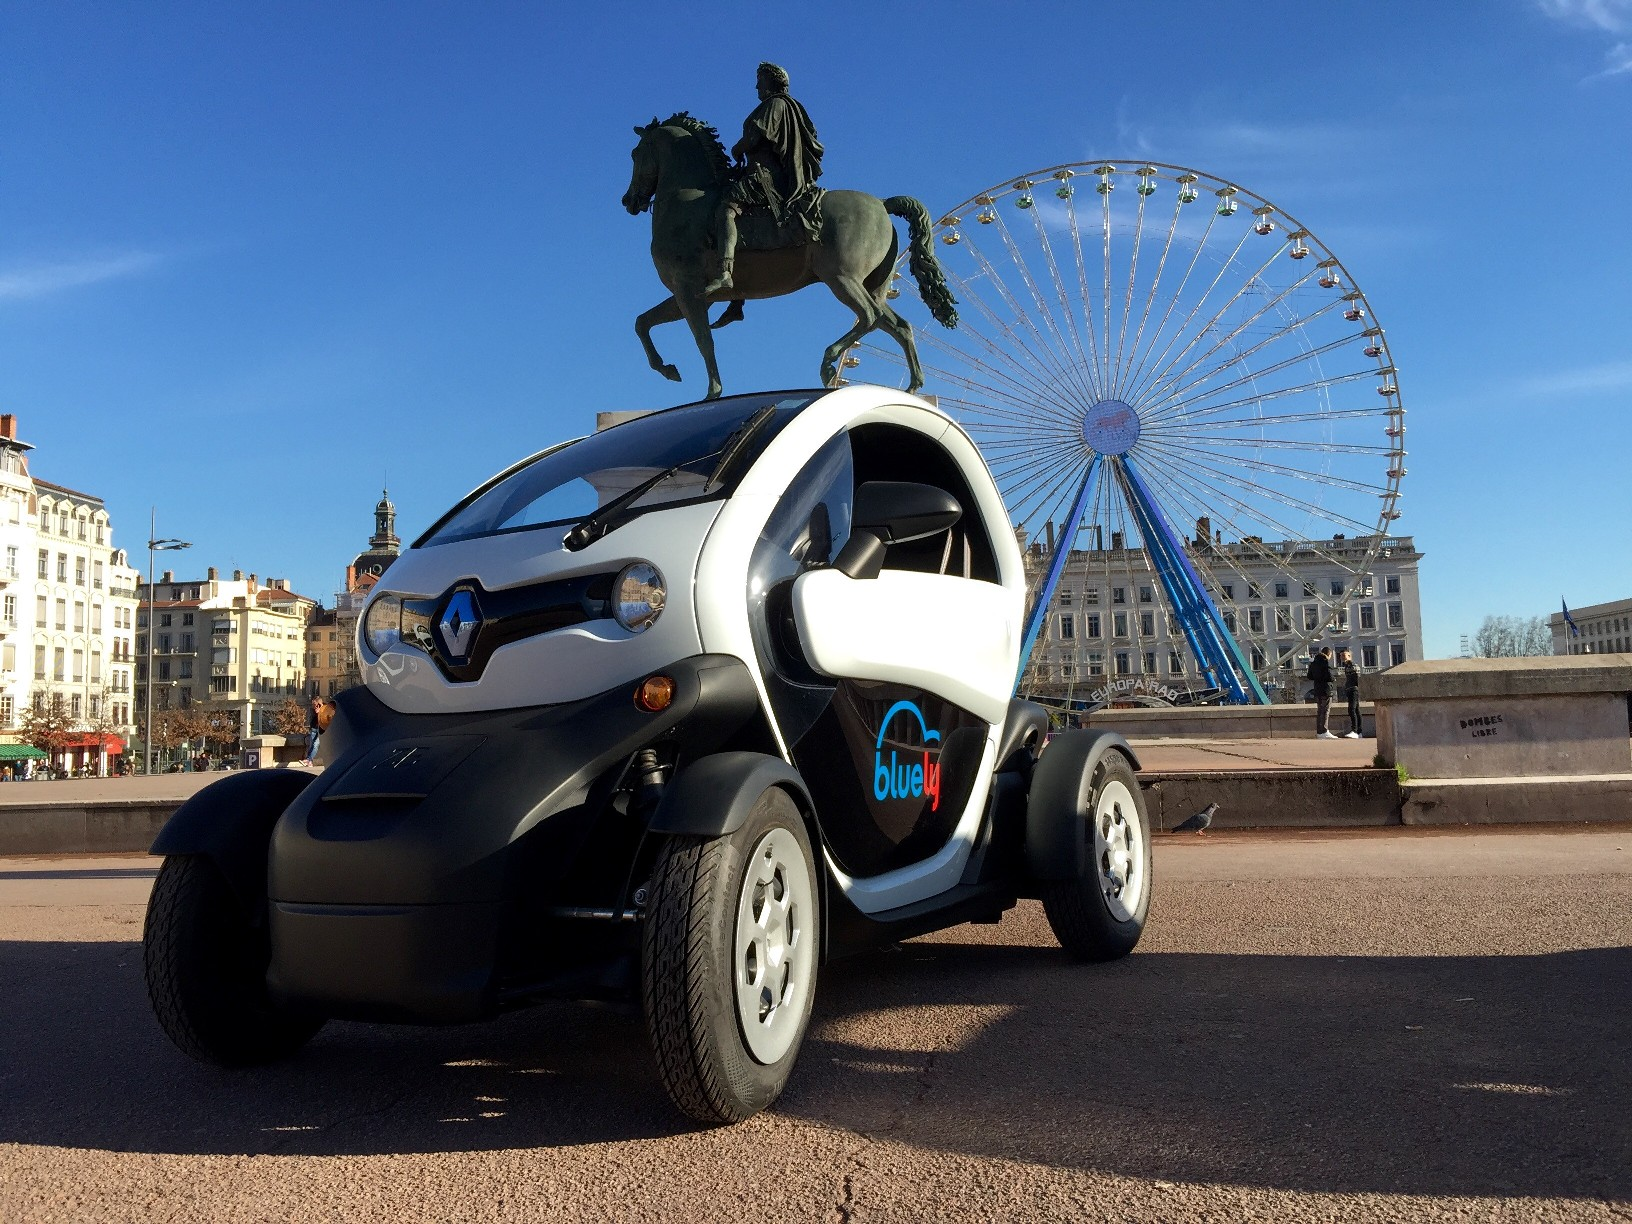 Electric Renault Twizy used in Lyon car sharing scheme